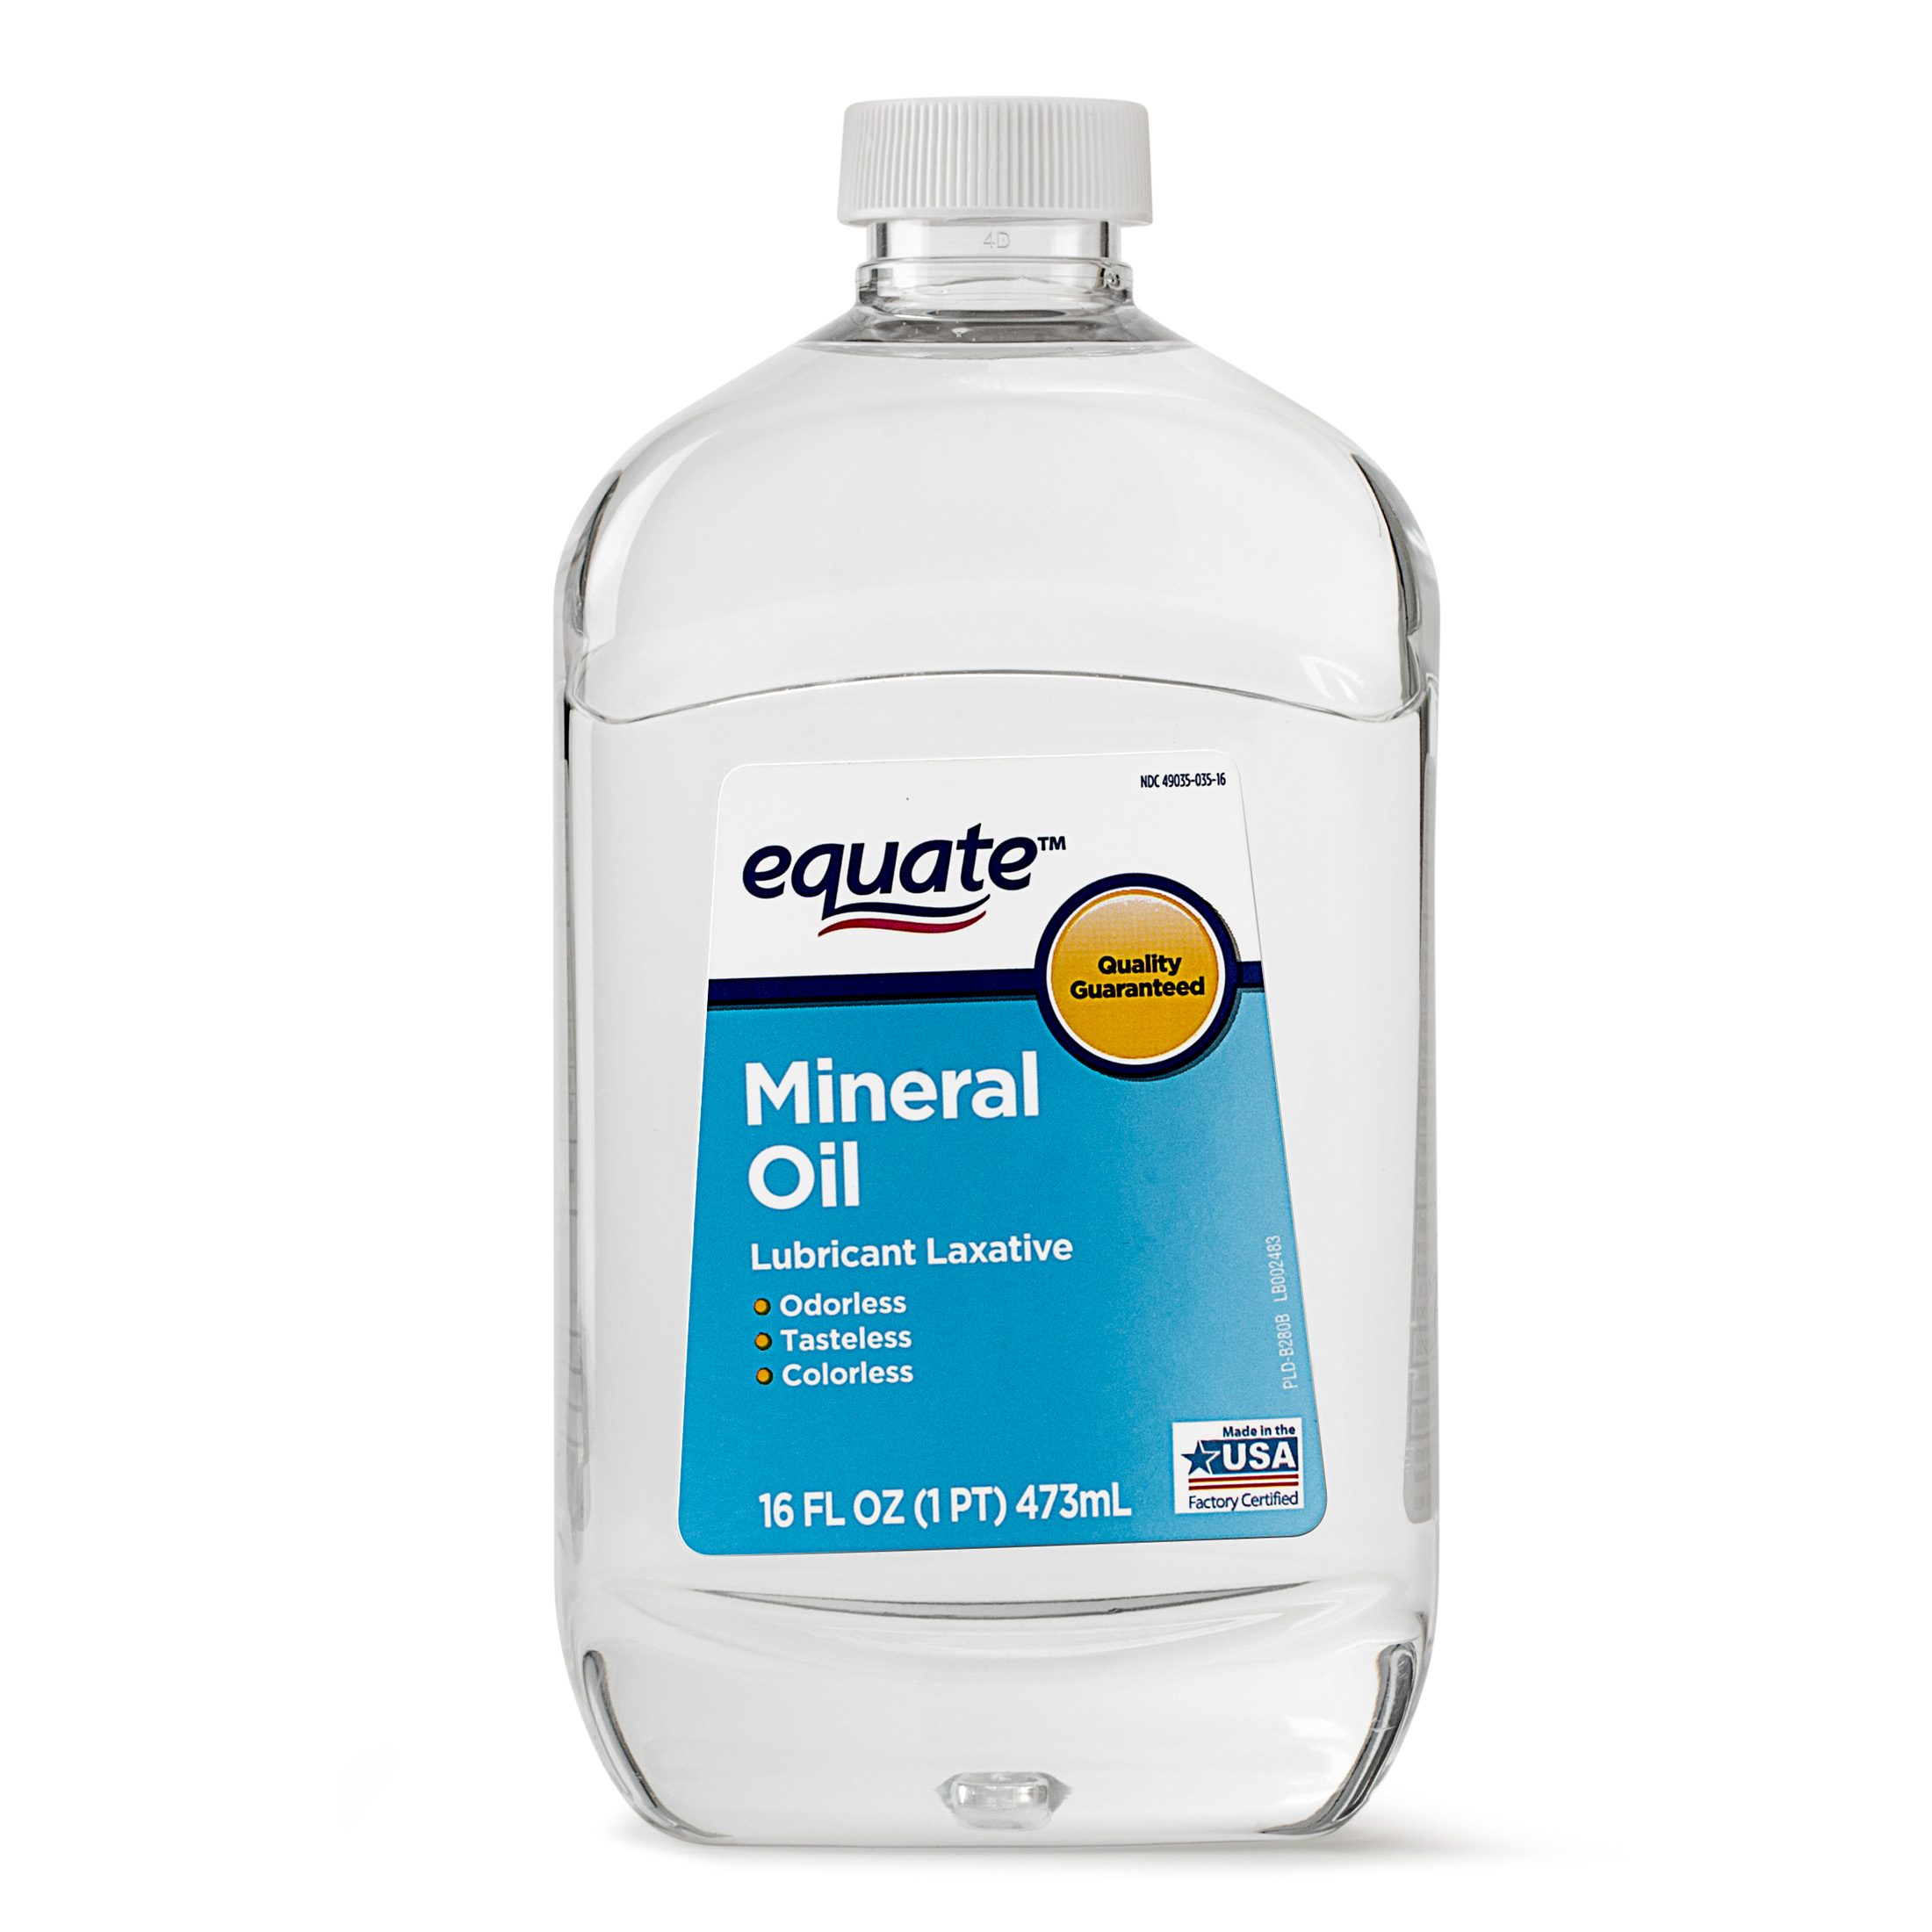 Mineral Oil Equate Mineral Oil Lubricant Laxative 16 Fl Oz